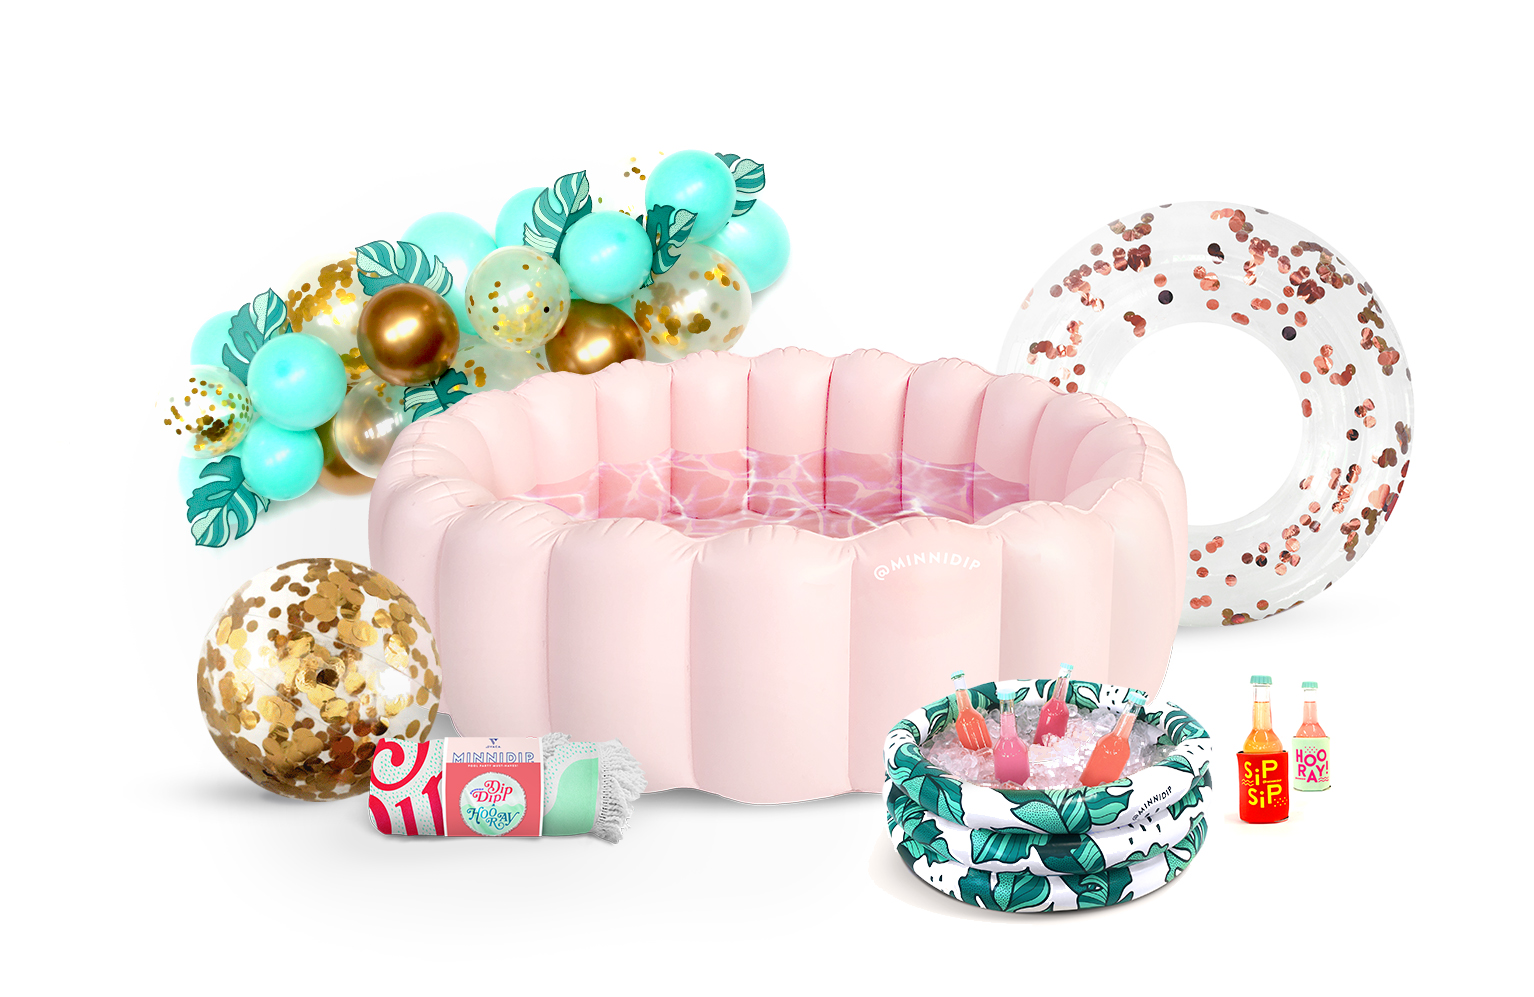 minnidip_poolpartyinabox_collection_tufted_v1.jpg